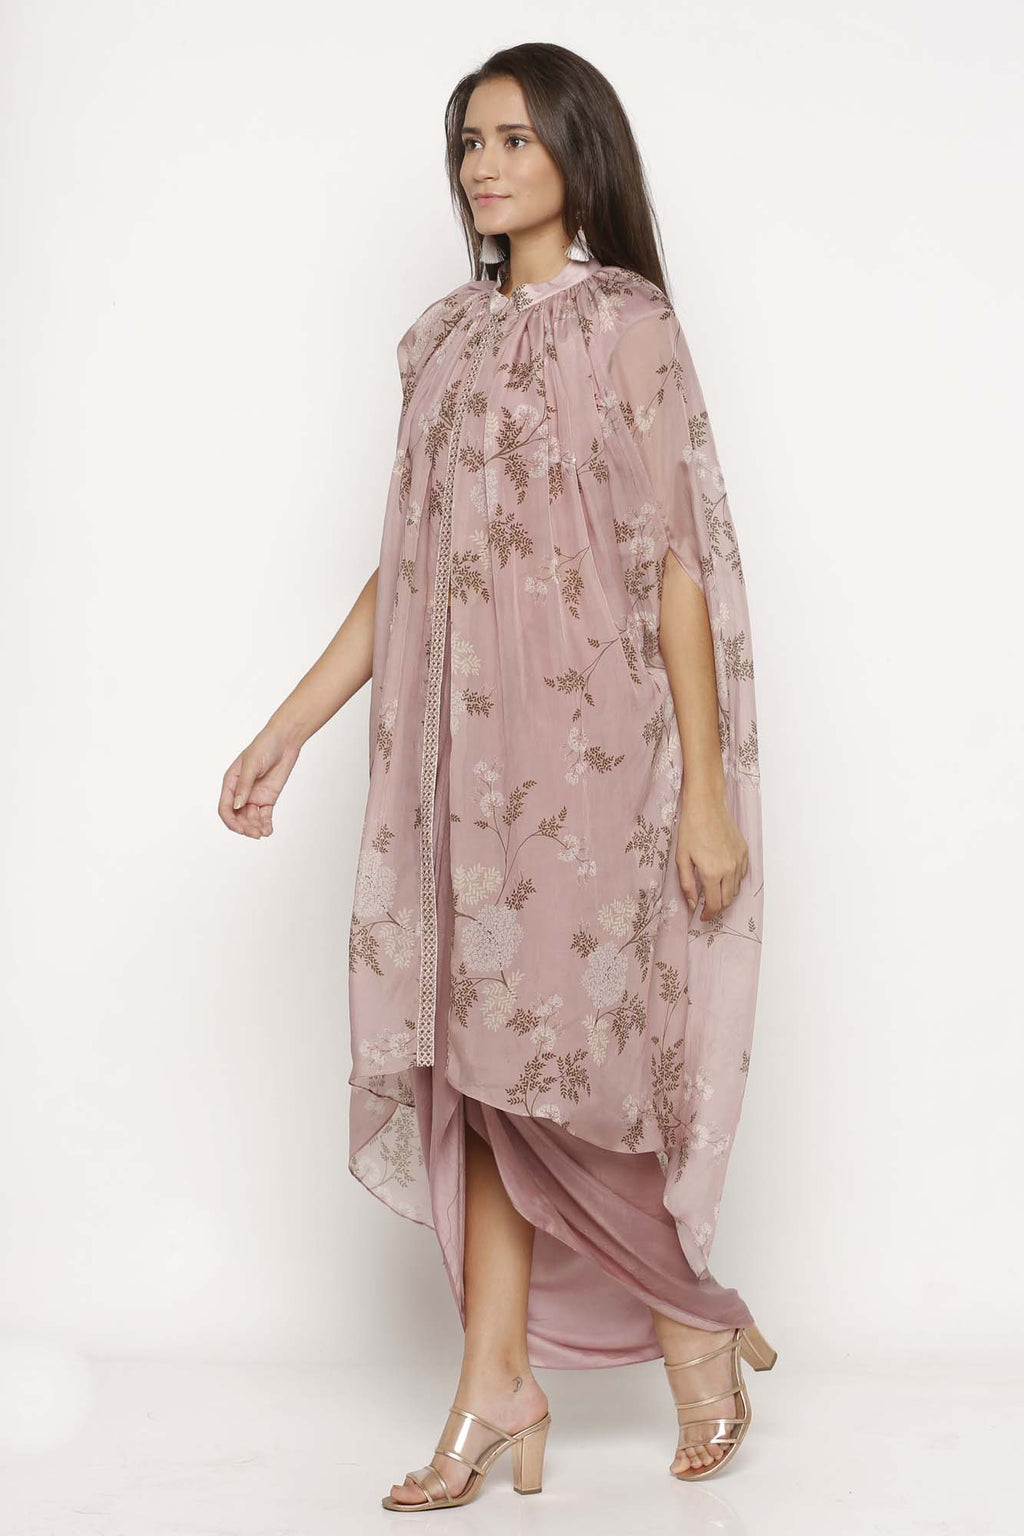 Pink Drape Dress with Cape - Riviera Closet